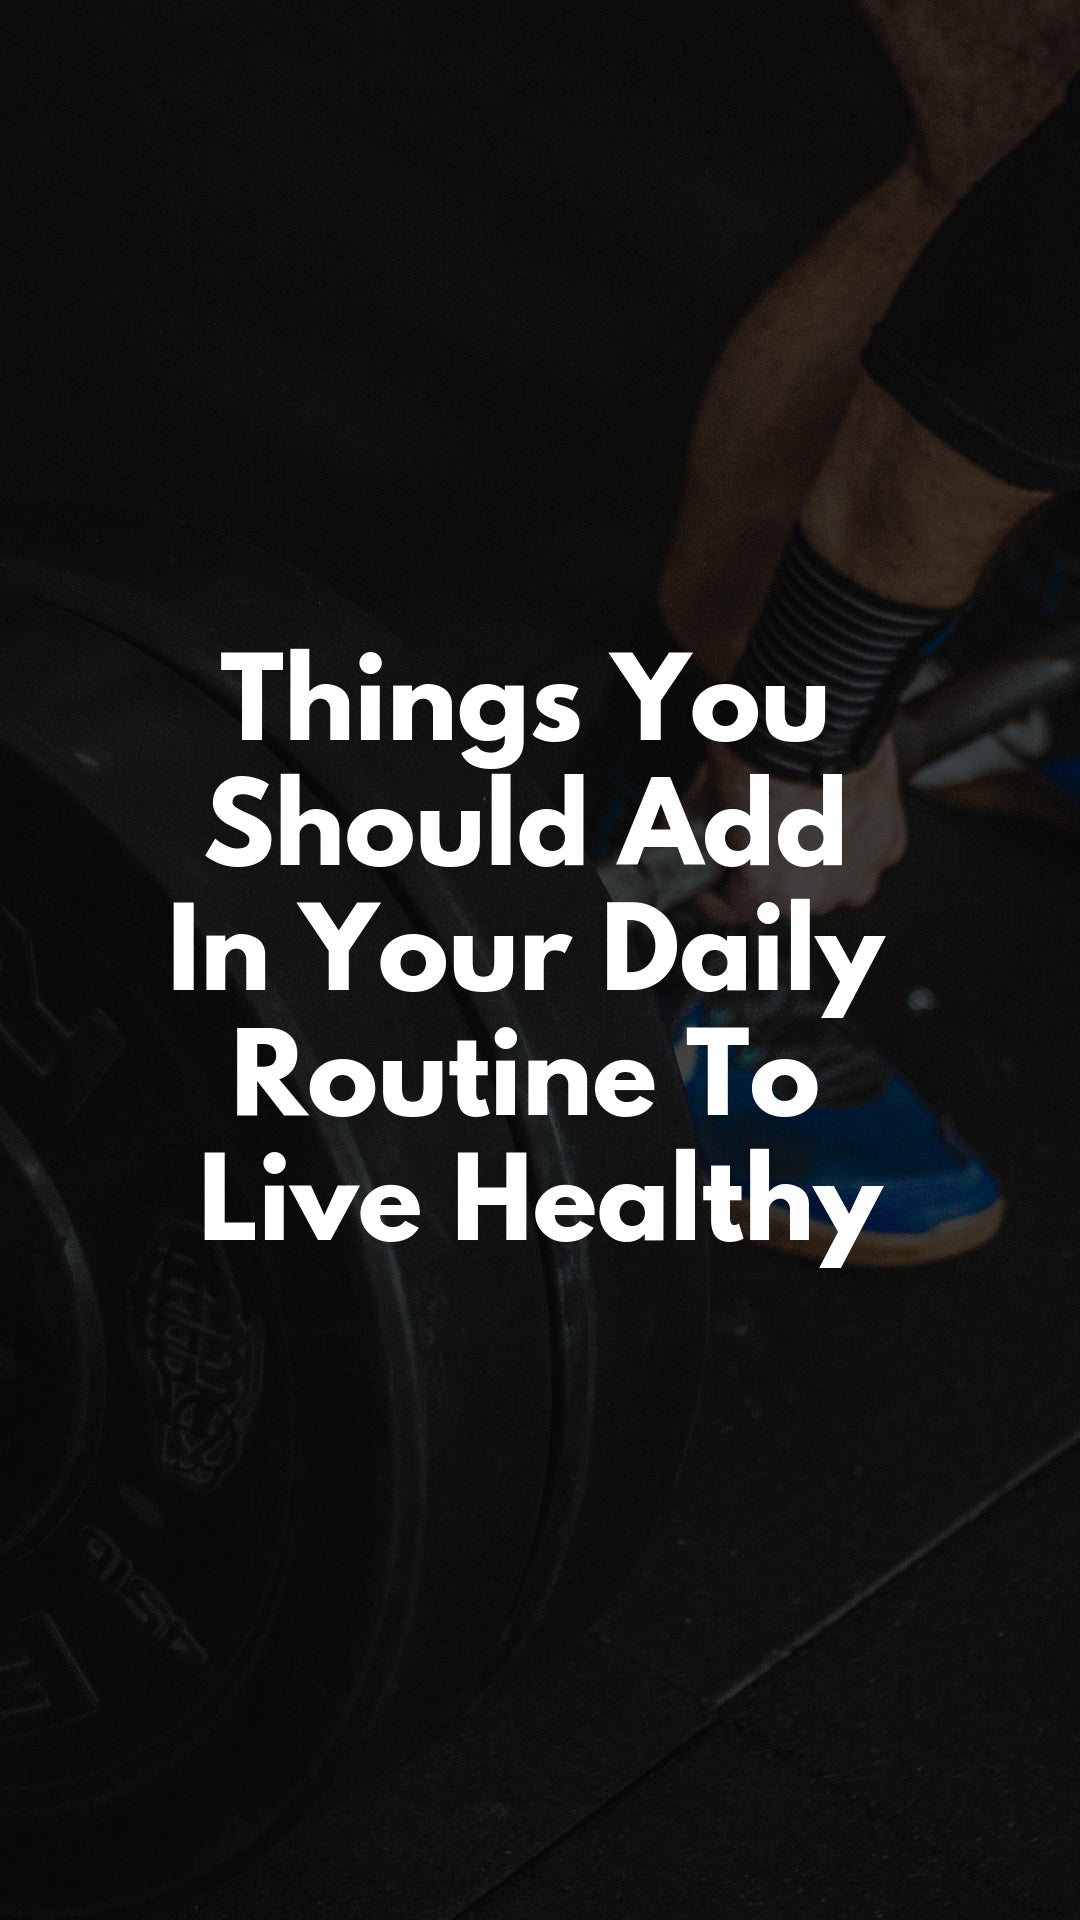 Things You Should Add In Your Daily Routine To Live Healthy